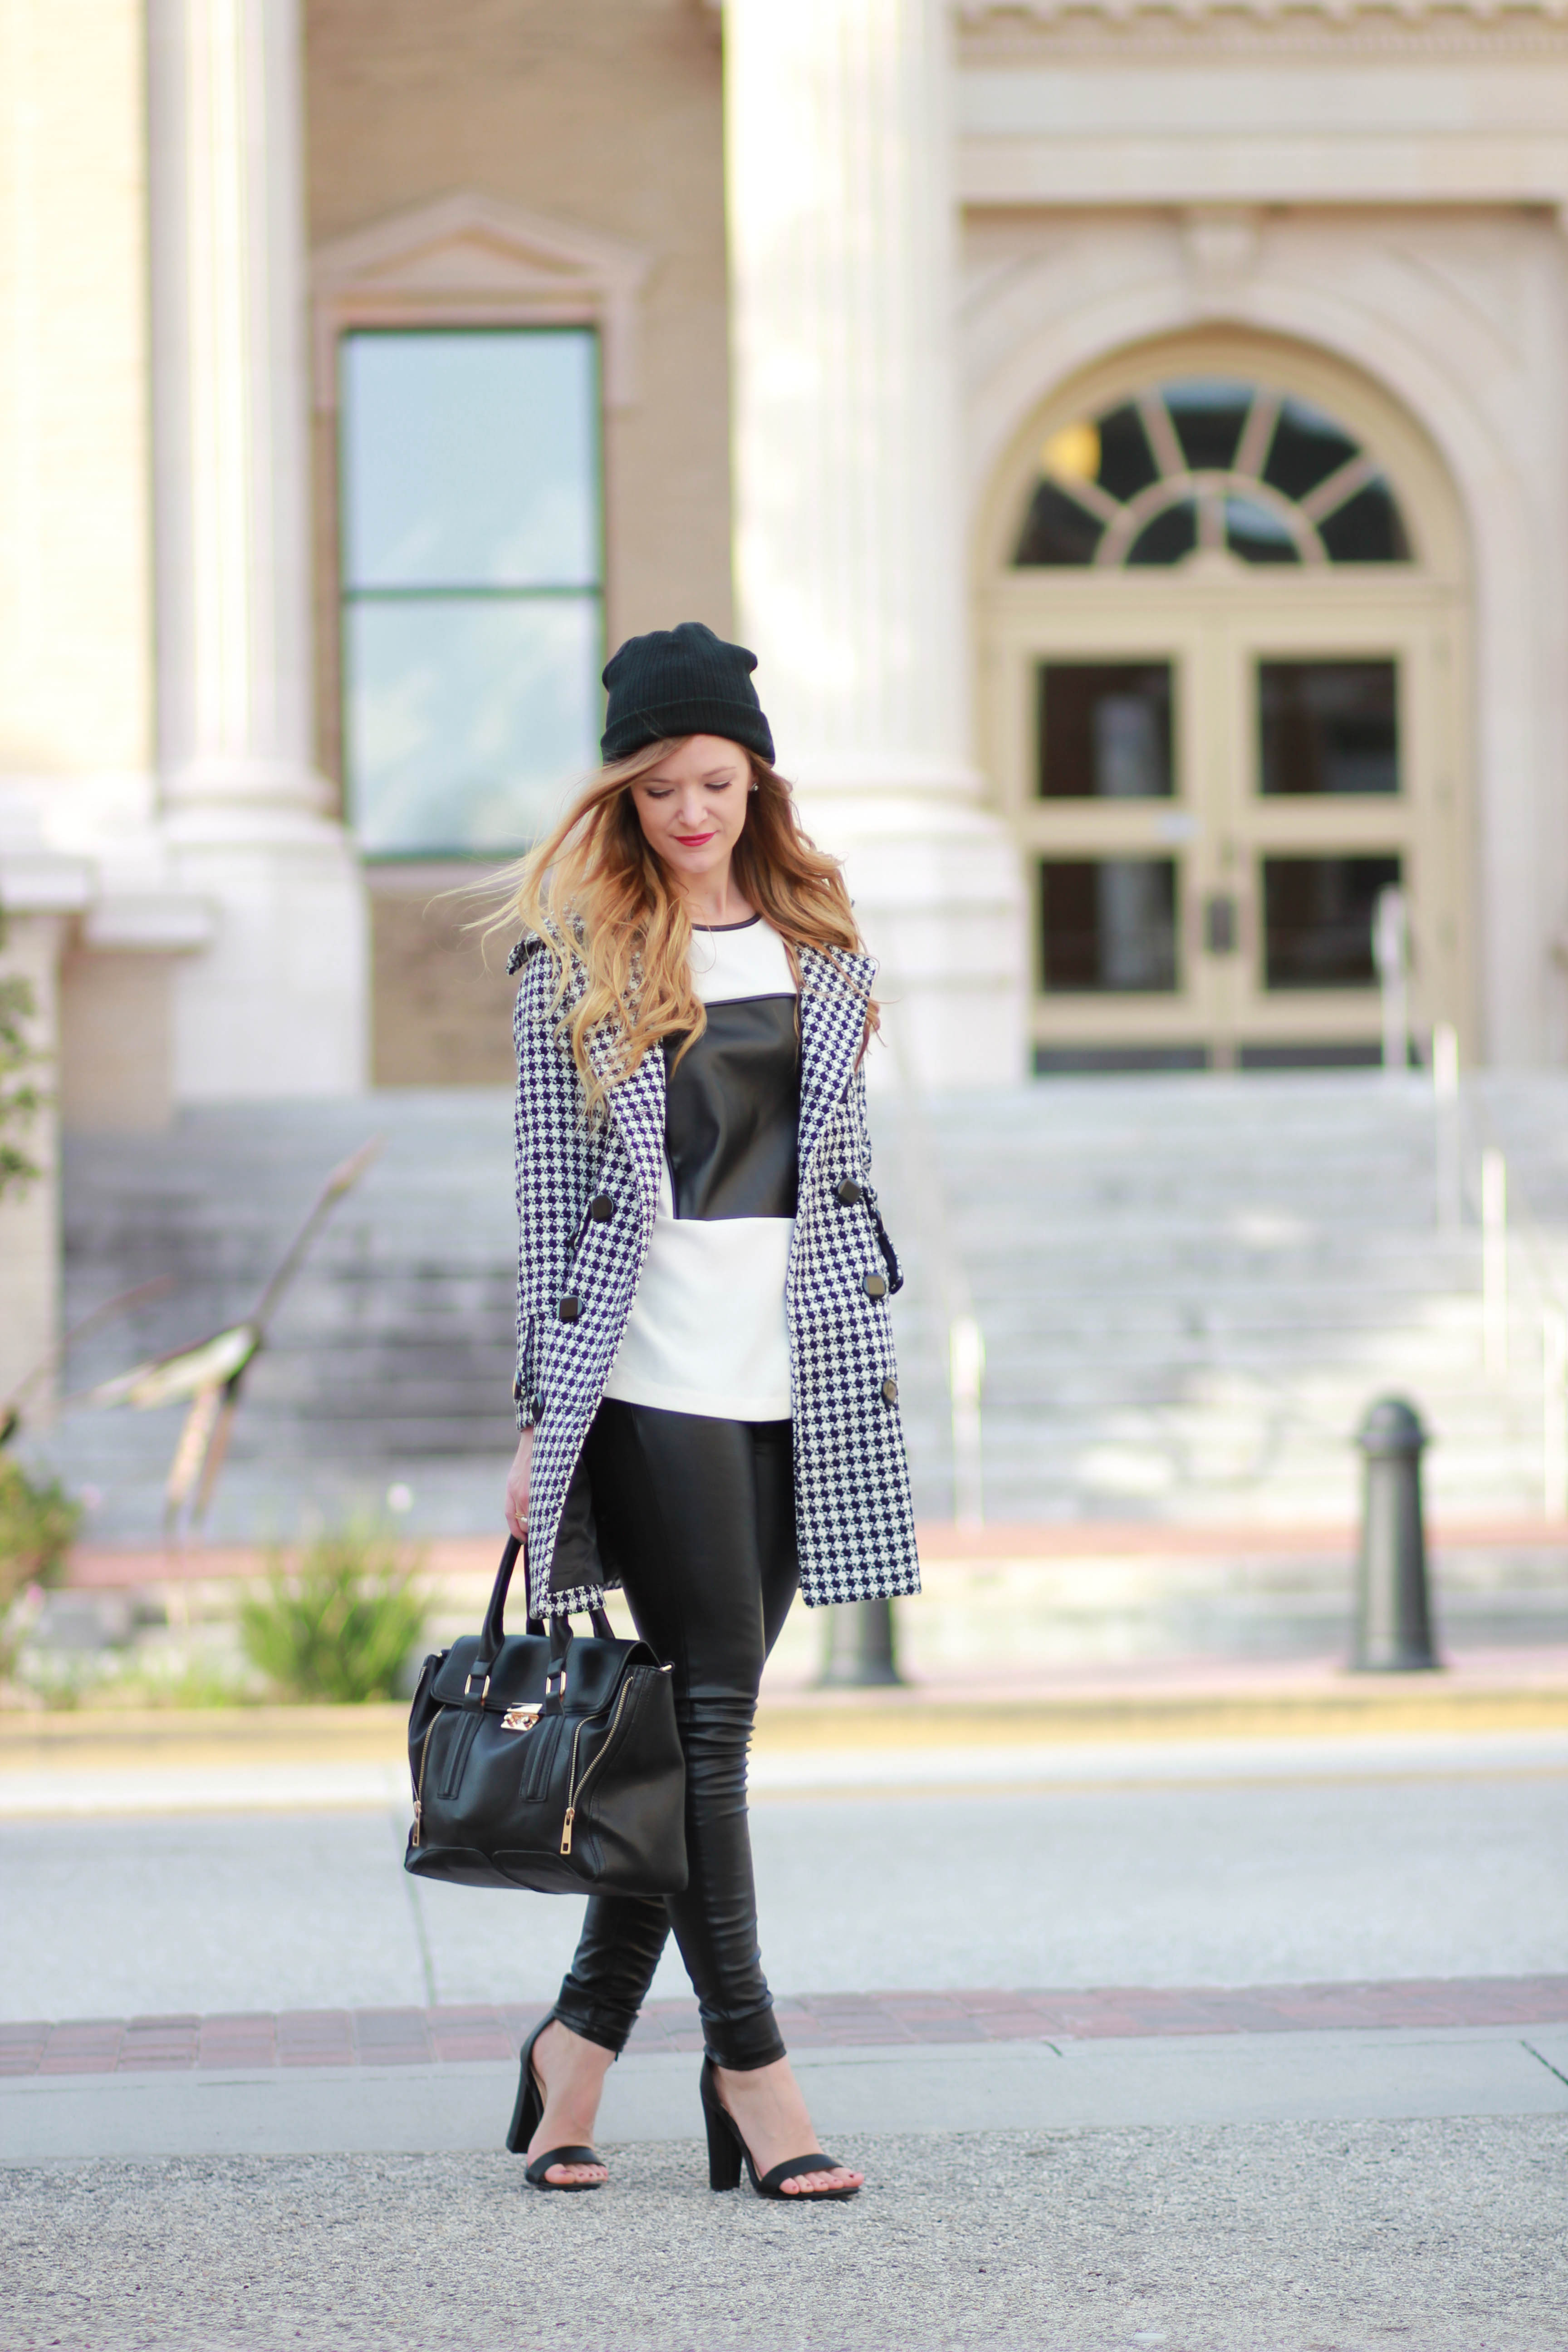 orlando, florida fashion blogger styles oasap houndstooth coat with h&m leather pants for a work inspired winter outfit